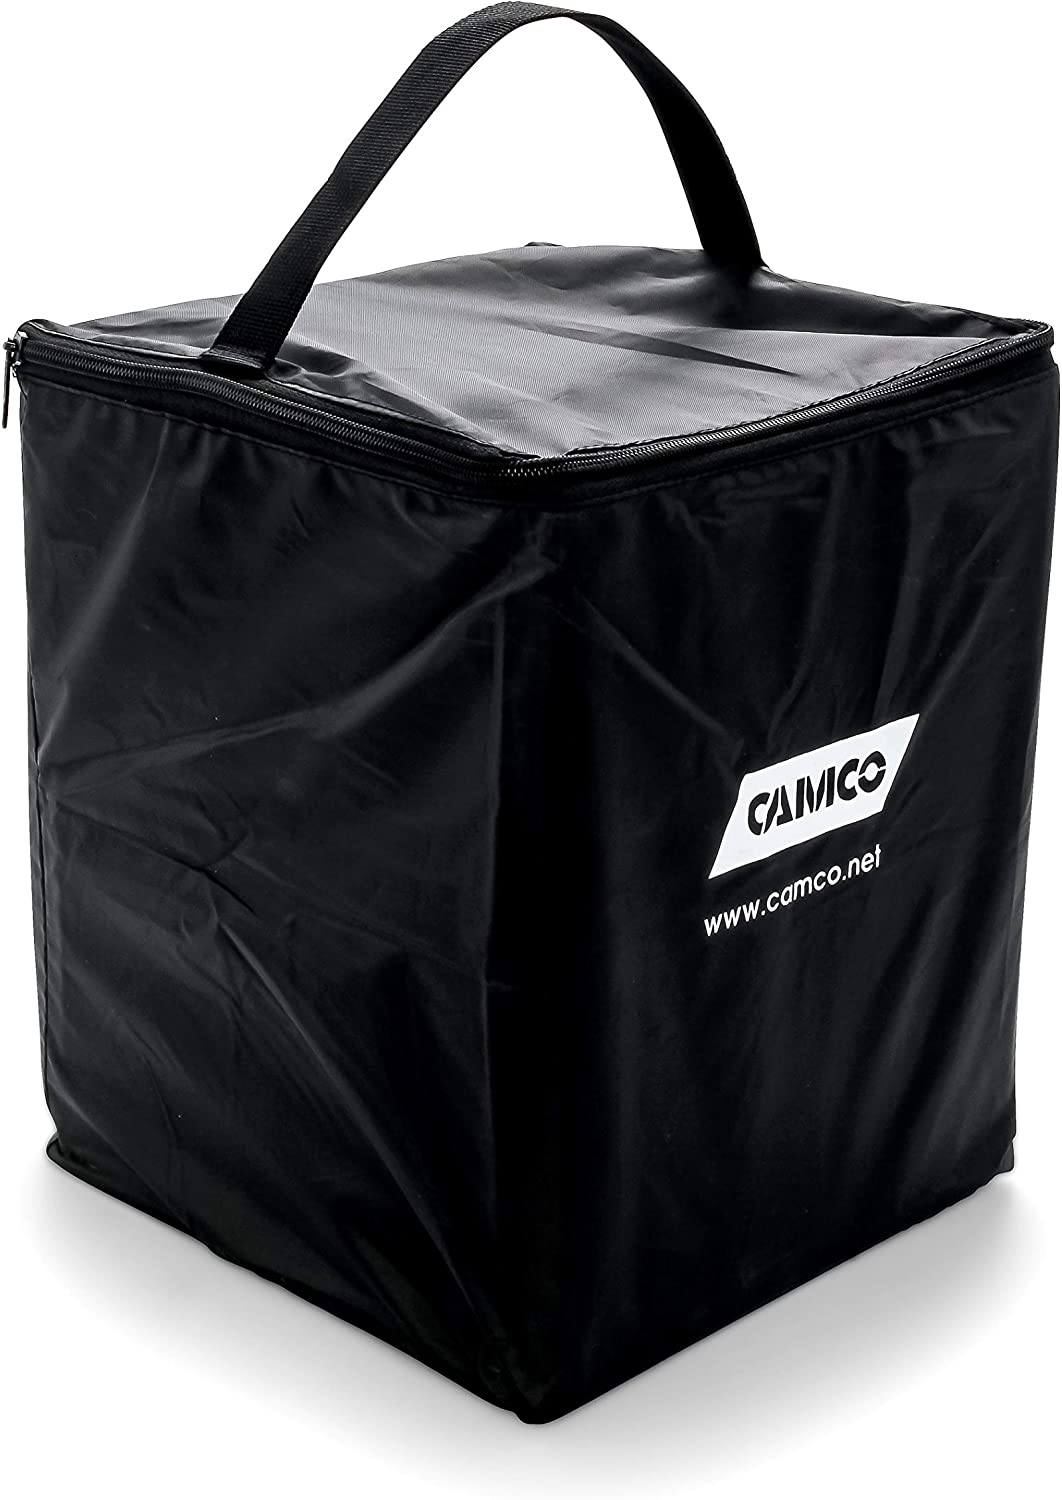 8-inch x 8-1//2-inch RV Leveling Blocks-Features a Sturdy Zipper Closure and Carrying Handle Camco Replacement Storage Bag Holds up to 44508 10